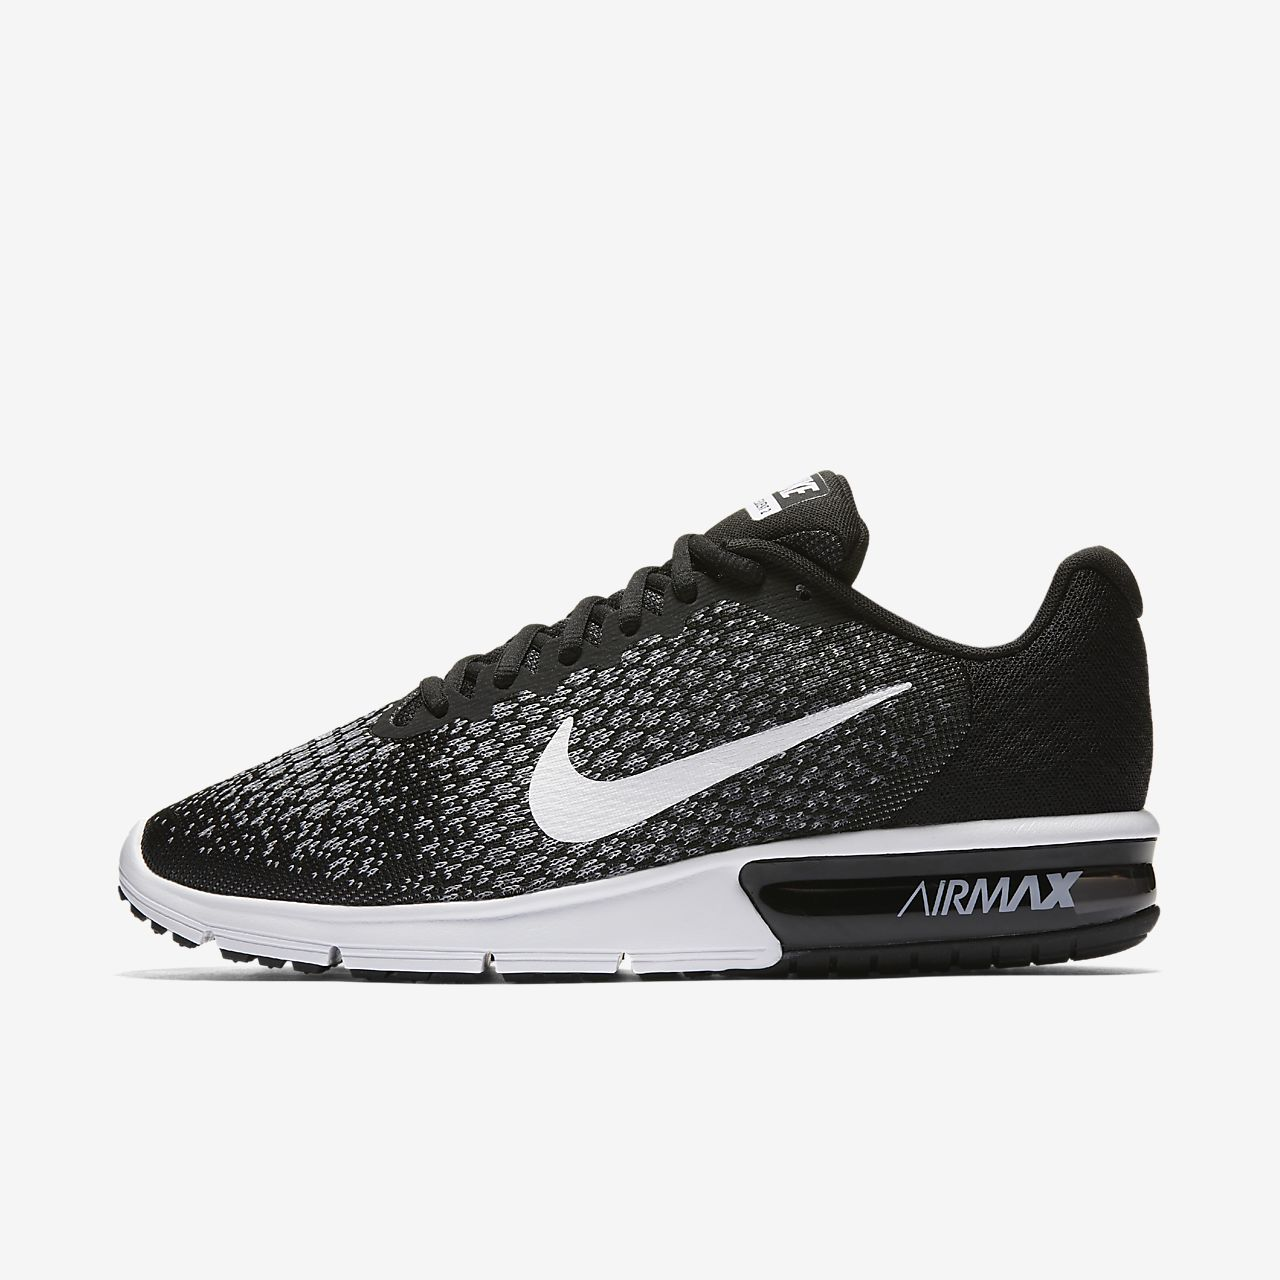 Nike WMNS Air Max Sequent Sneaker Damen Schuhe NEU